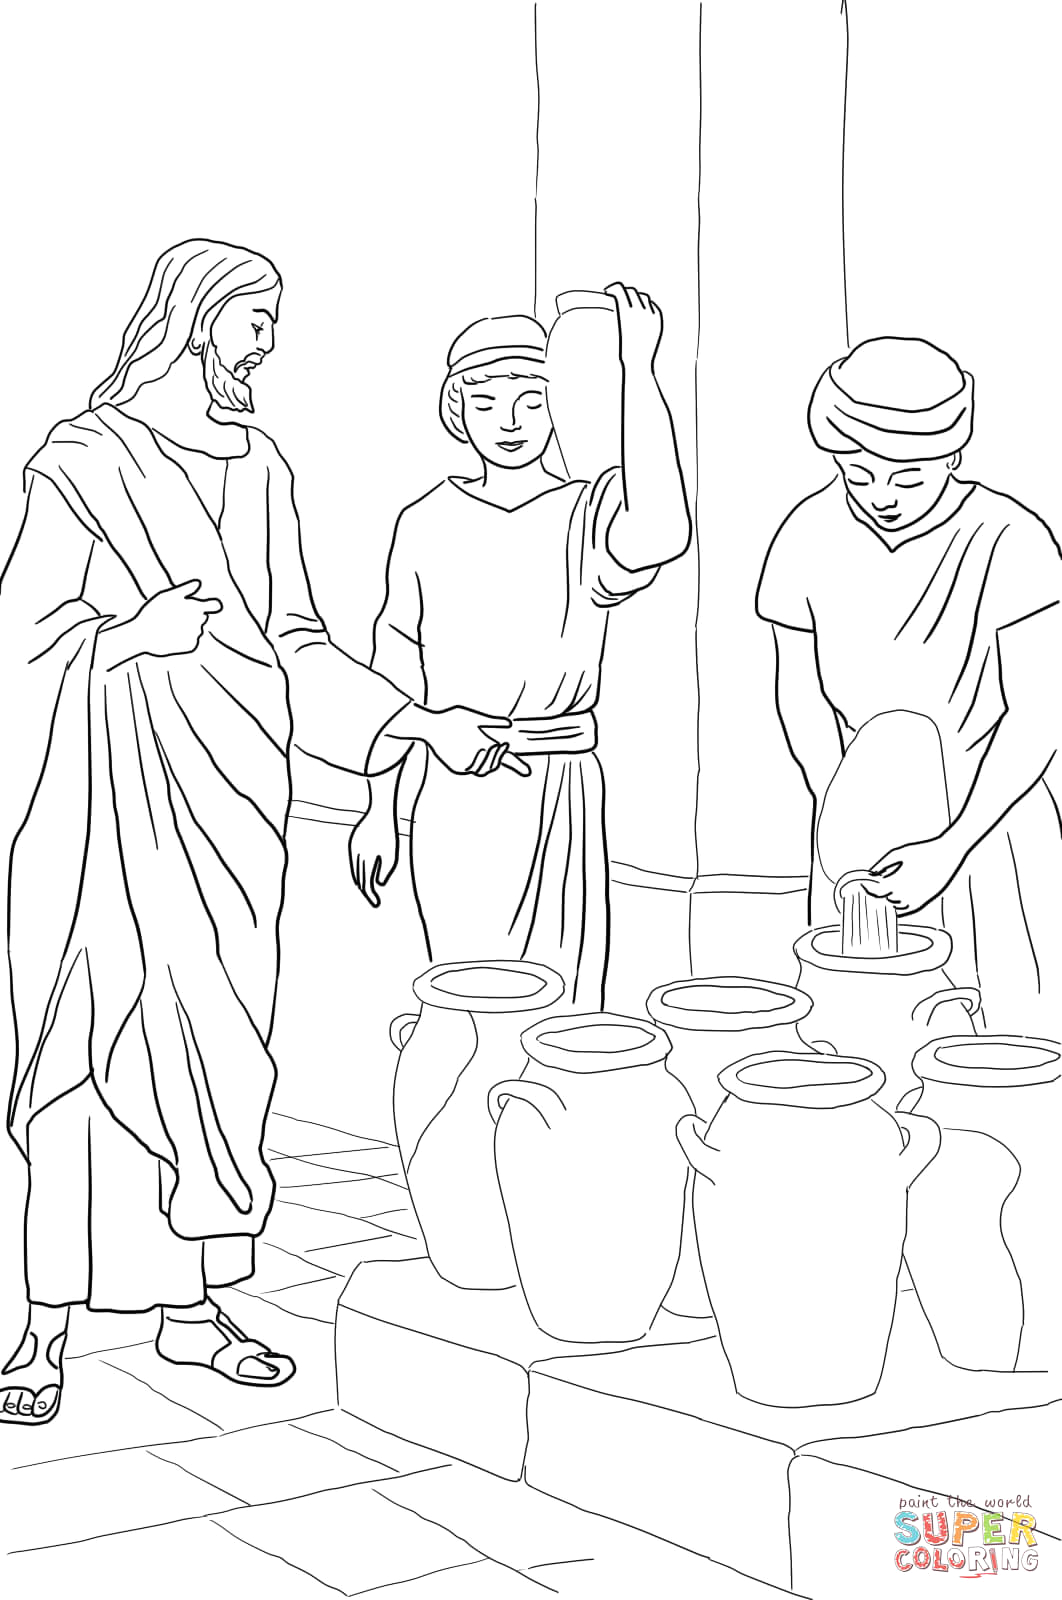 Jesus Turns Water Into Wine Coloring Page Jesus Turns Water Into Wine Coloring Page Coloring Home